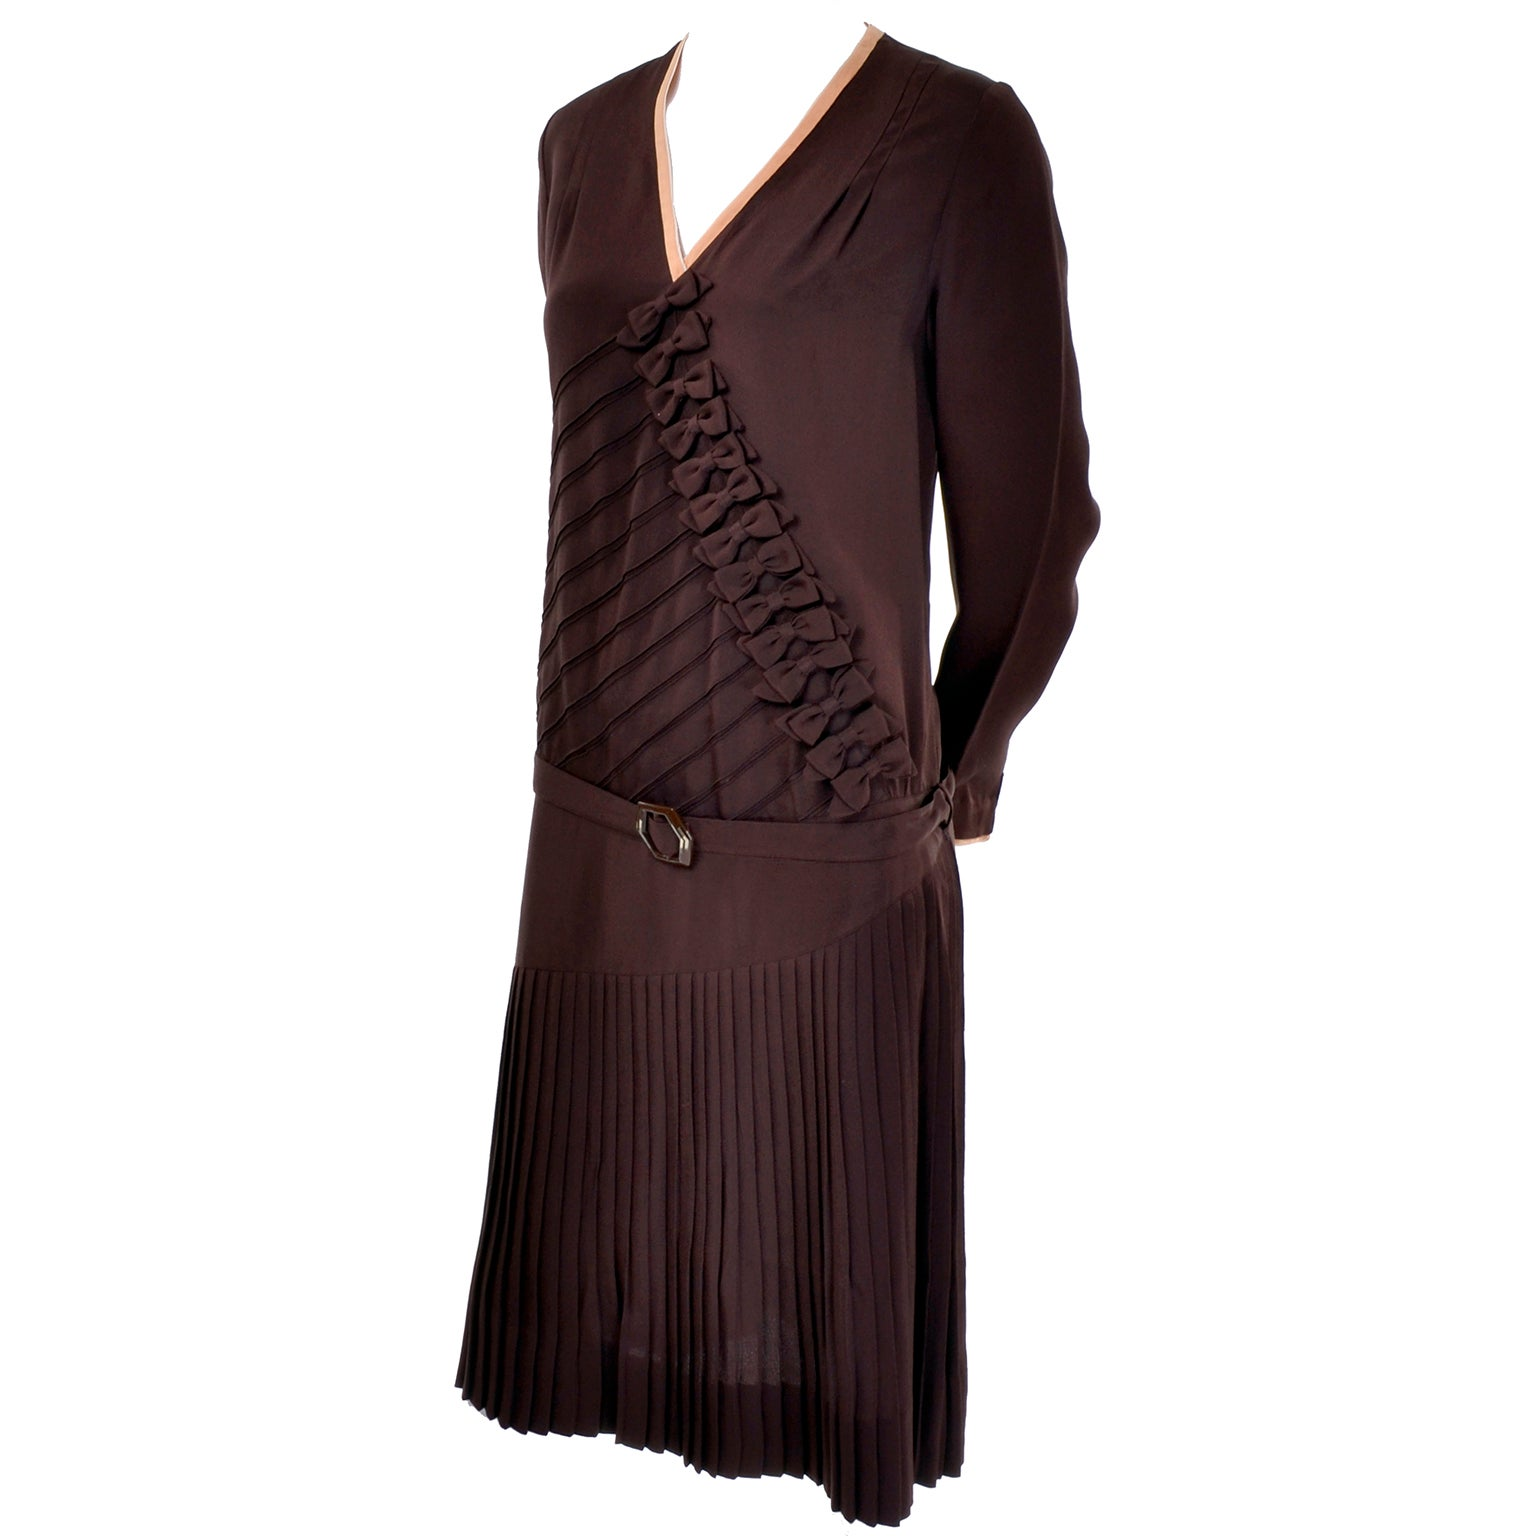 1920s Vintage Brown Silk Peach Trimmed Dress W/ Detailed Pleating & Rows of Bows